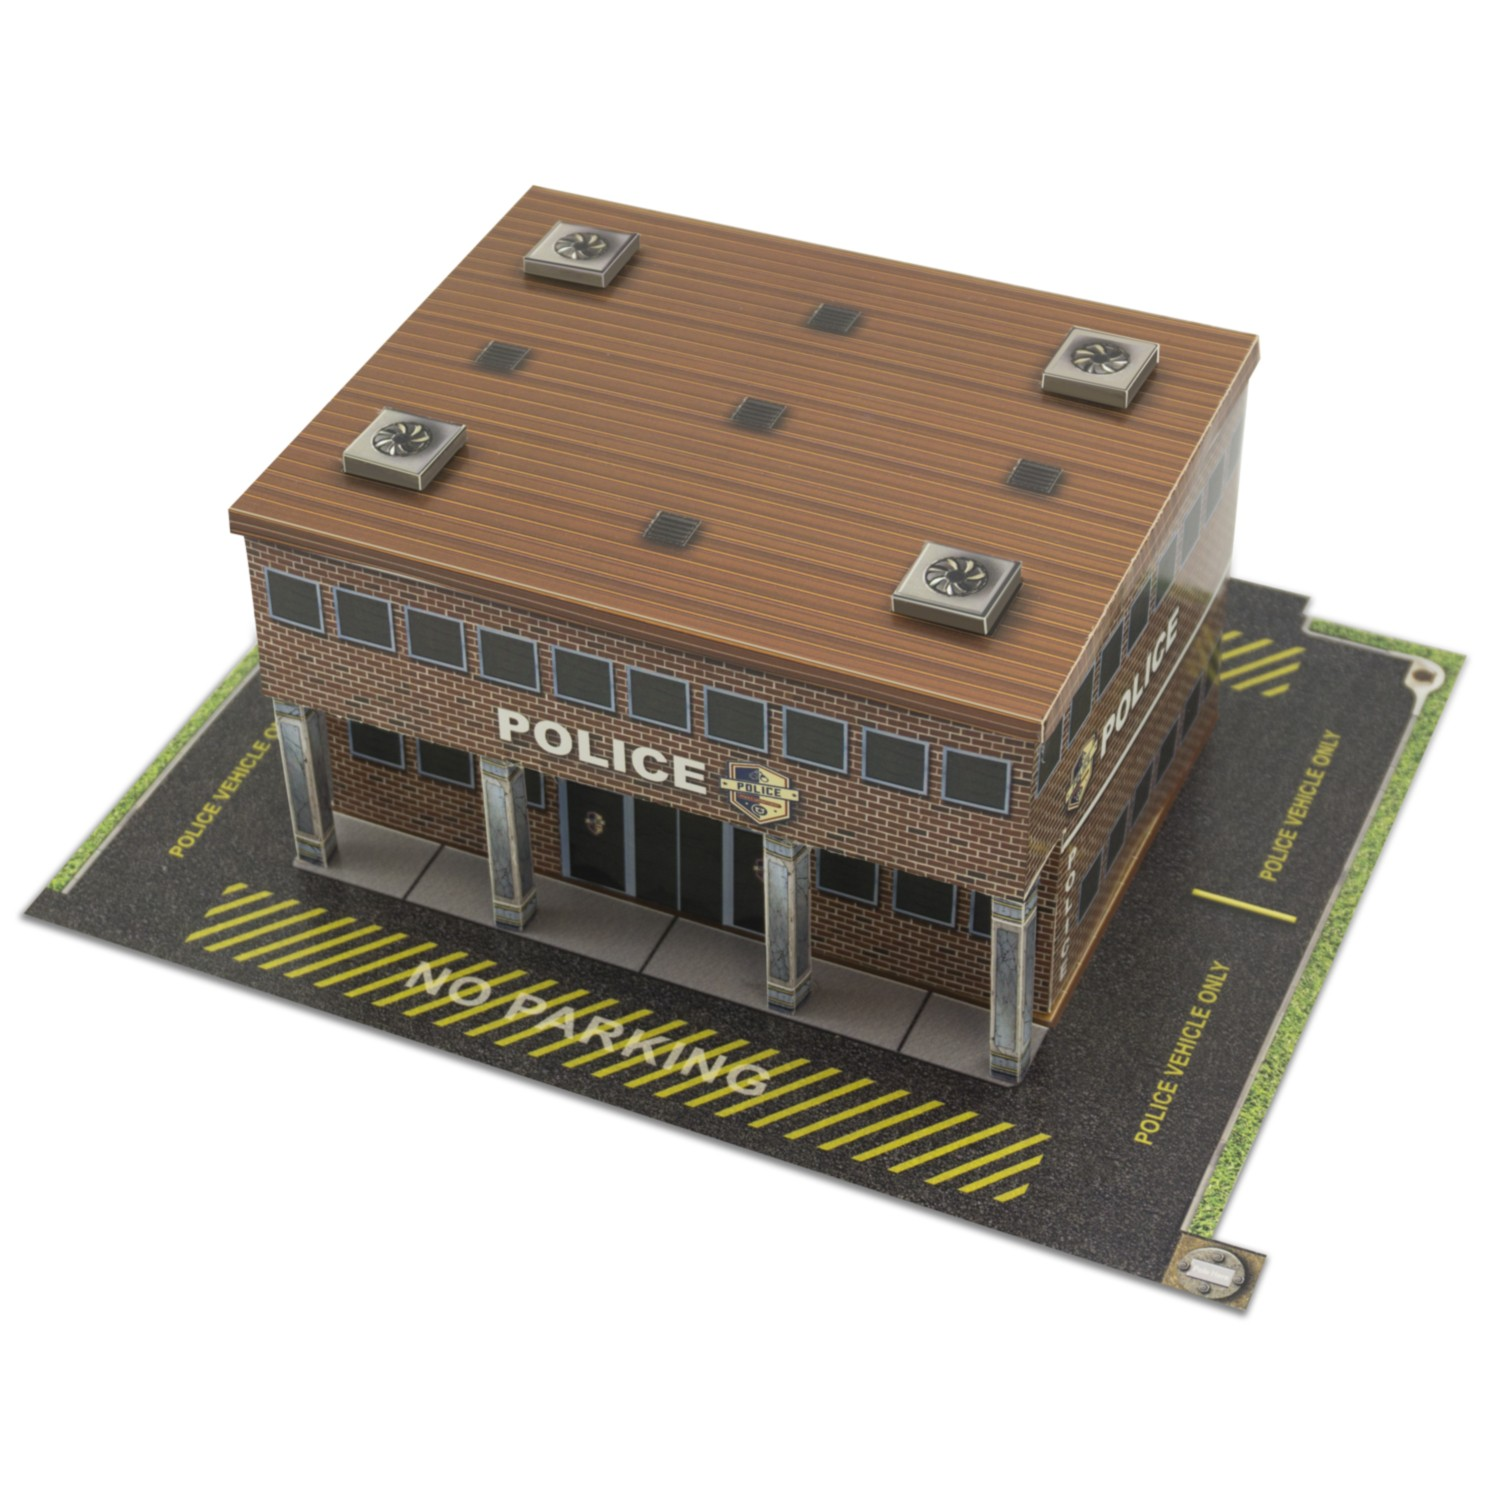 BK 4833 1:48 Scale Police Station Building Kit